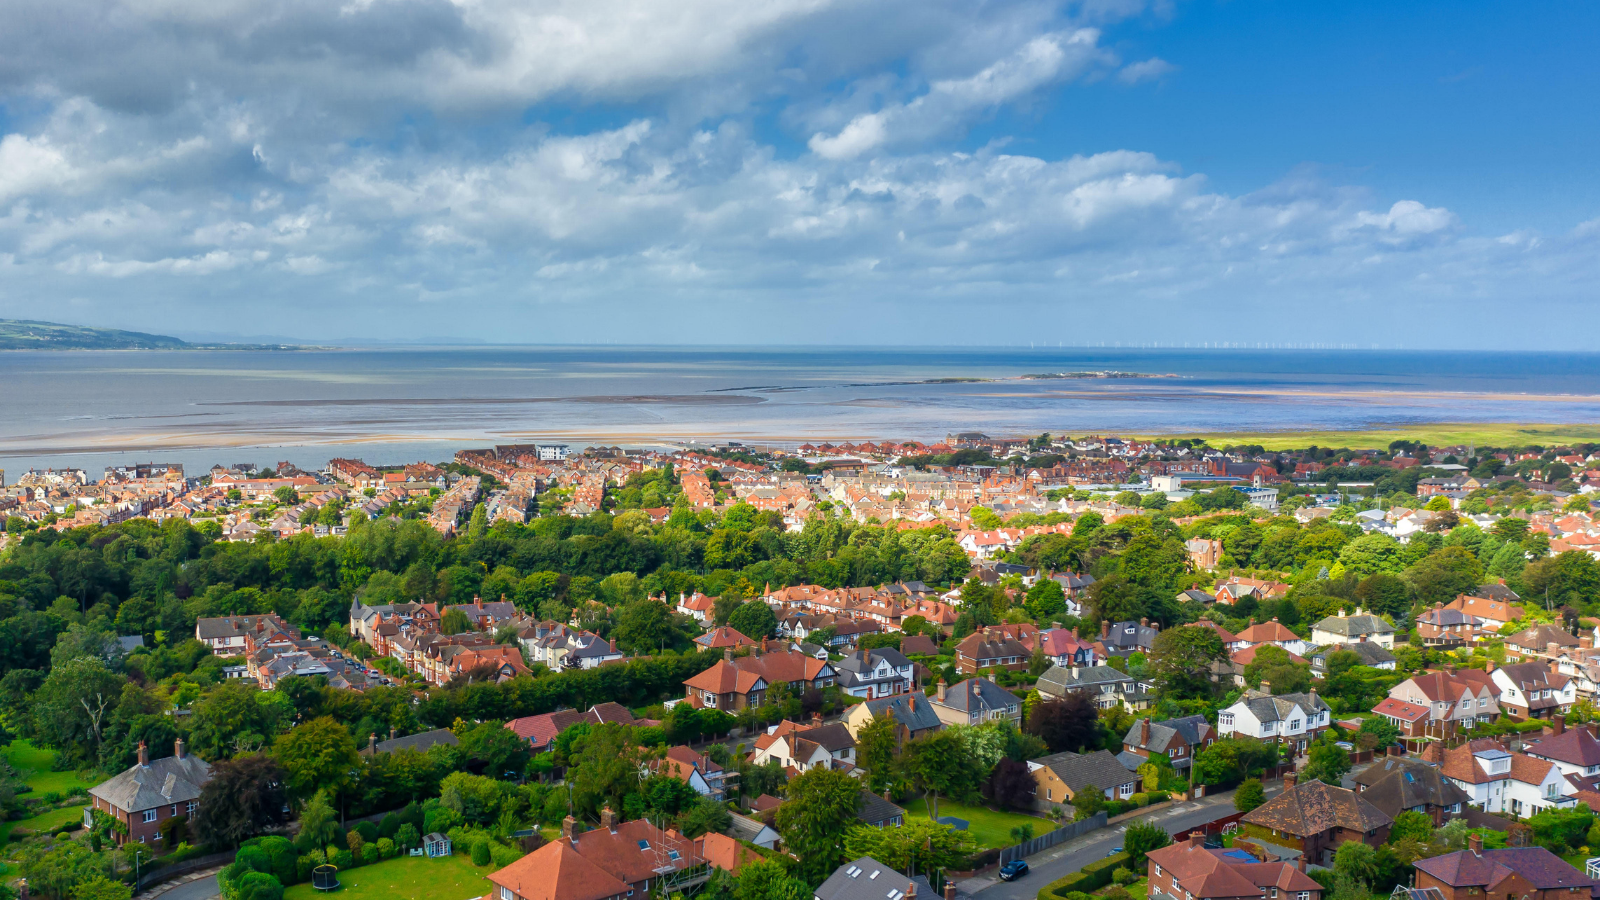 West Kirby drone featured image. Photo: Nigel McIntyre